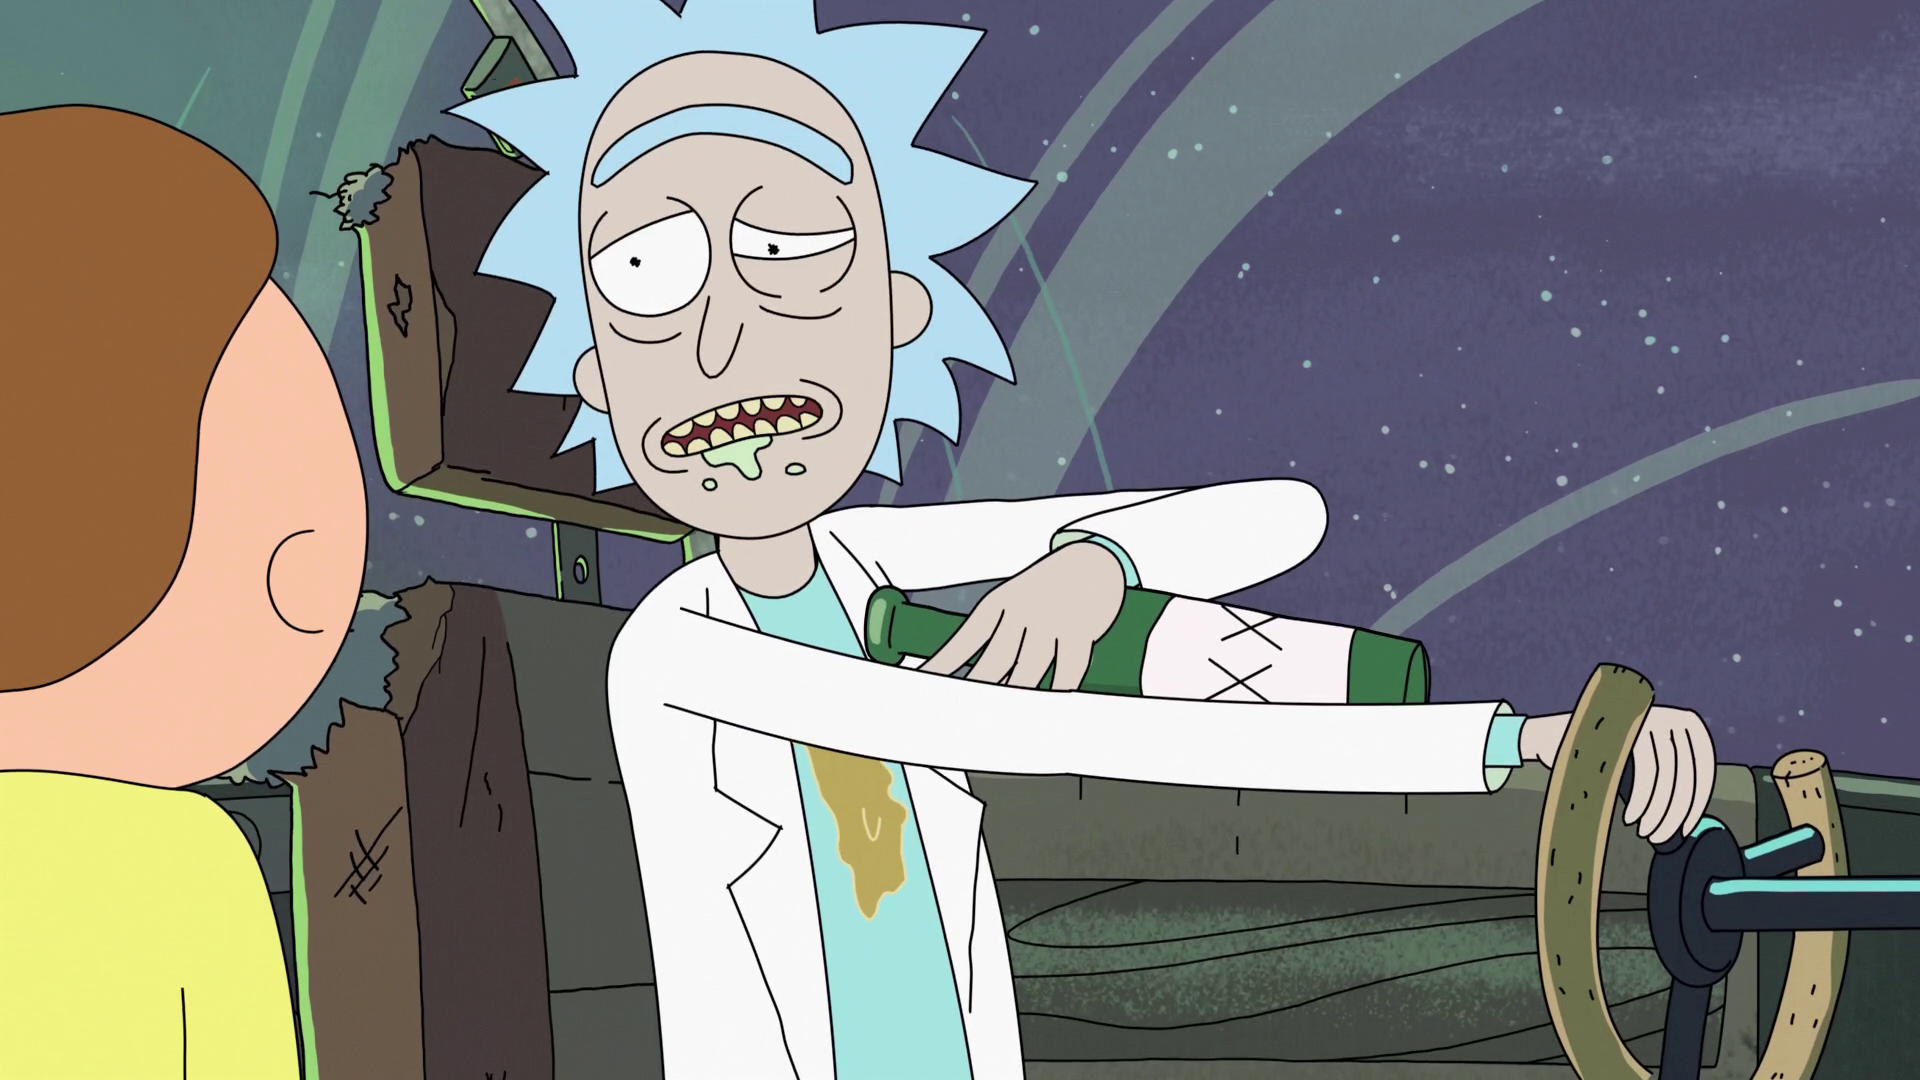 Probably Rick's most frequent crime is driving under the influence.